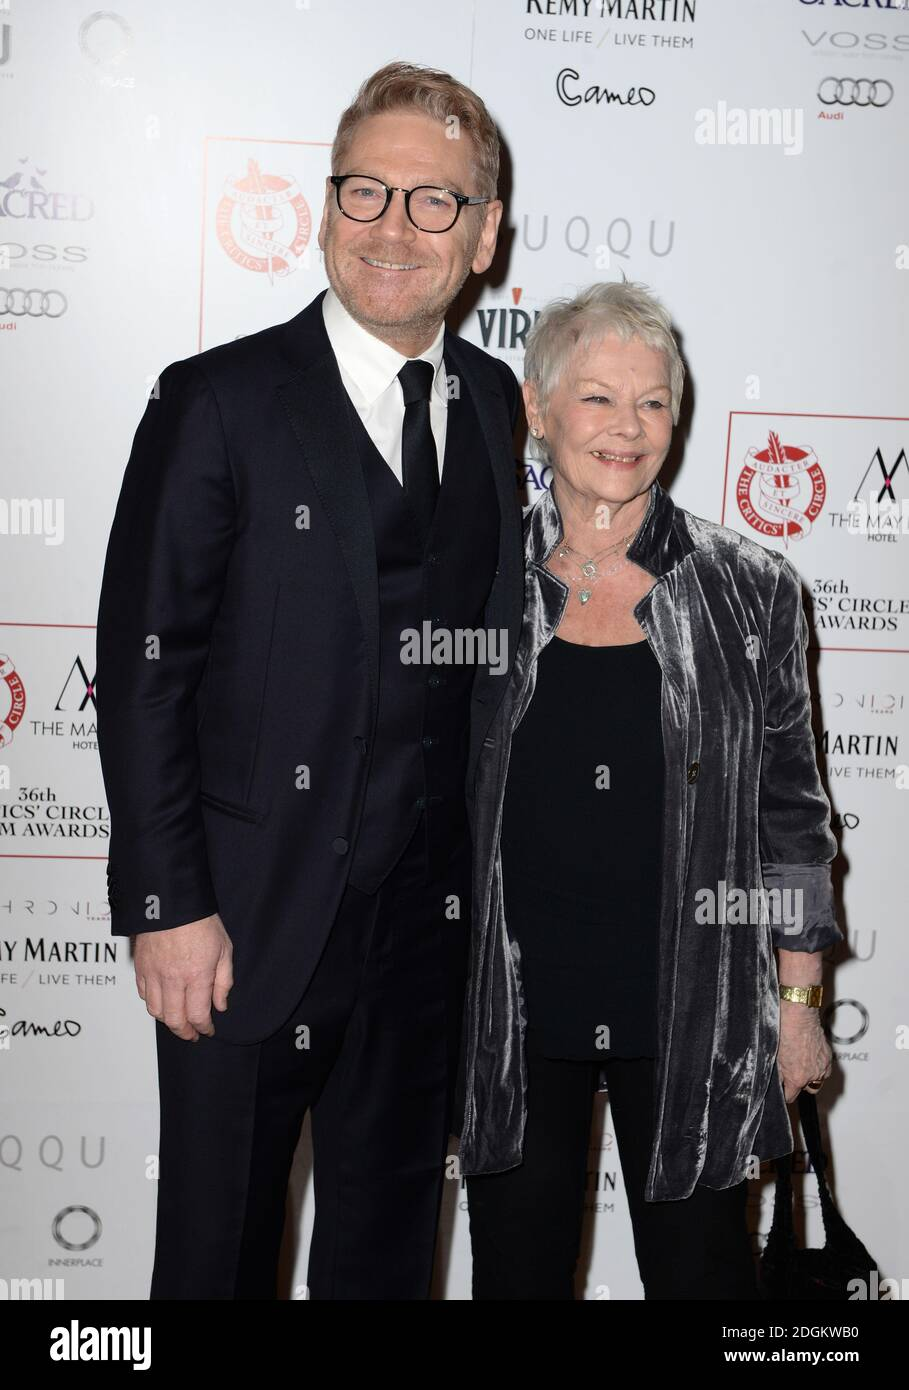 Kenneth Branagh and Dame Judi Dench arriving at the Critics Circle Film Awards 2016, the May Fair Hotel, London.  Stock Photo